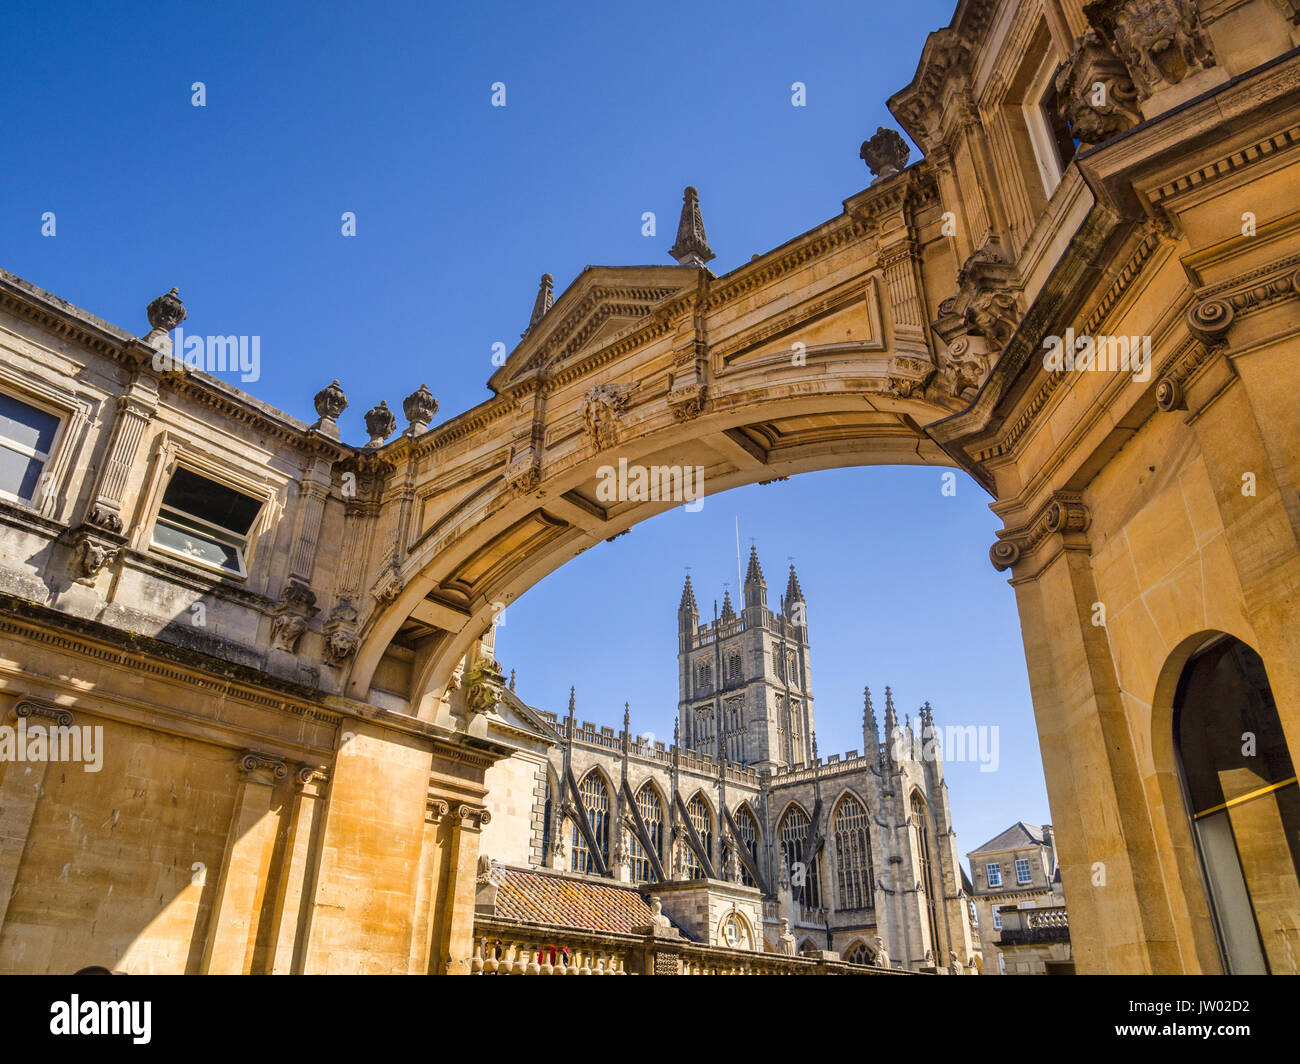 Bath, Somerset, England, UK - Bath Abbey seen through the York Street Arch. - Stock Image